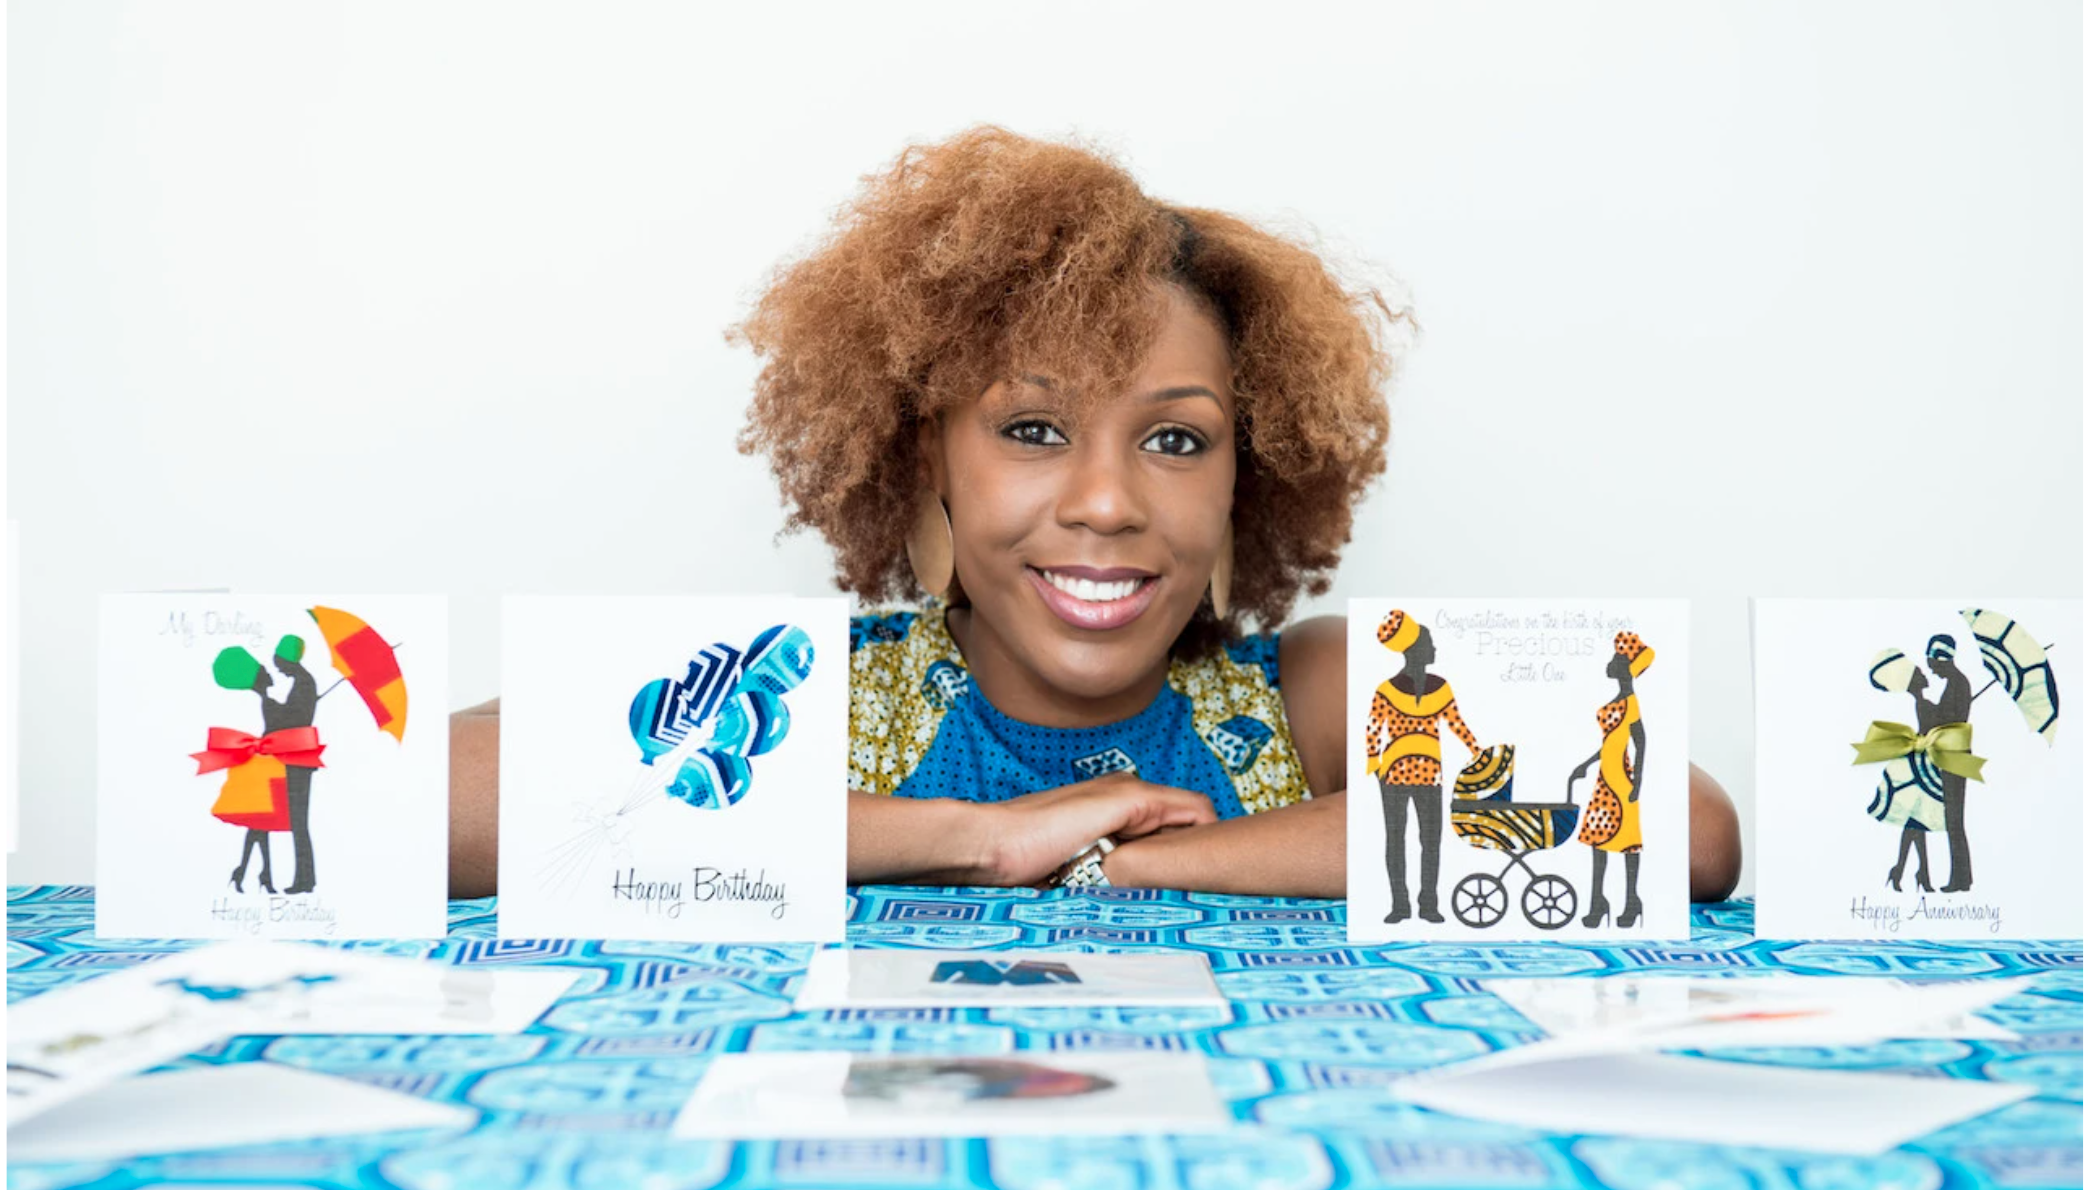 Above: Georgina Fihosy right with some of her cards at the beginning of her greeting card journey. She includes many great blog posts on her website https://afrotouch.design/)